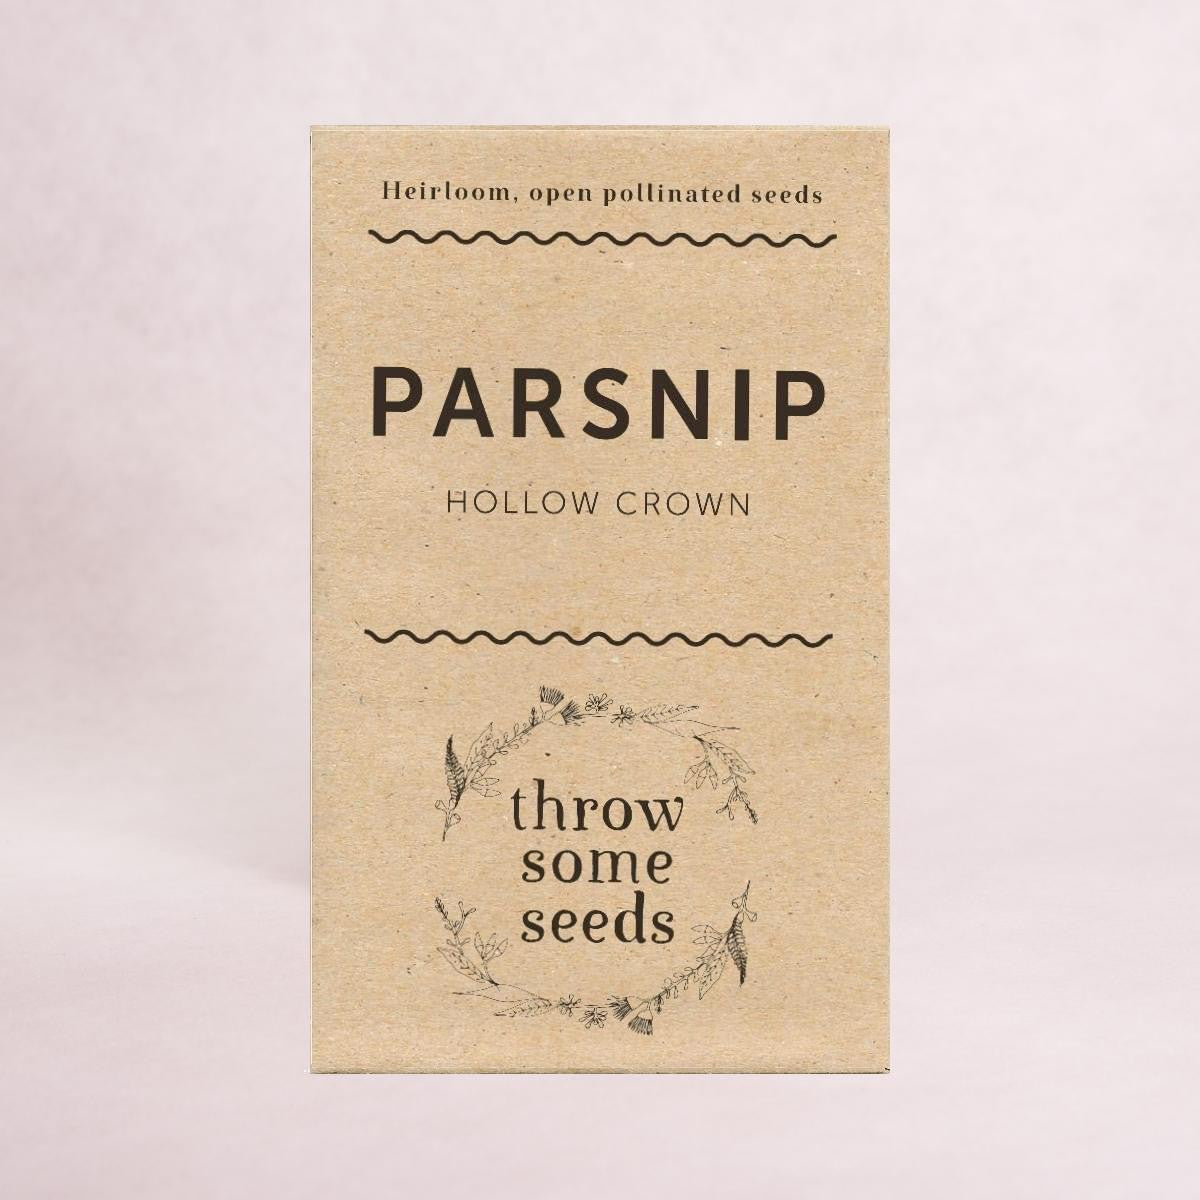 Parsnip (Hollow Crown) Seeds - Seeds - Throw Some Seeds - Australian gardening gifts and eco products online!